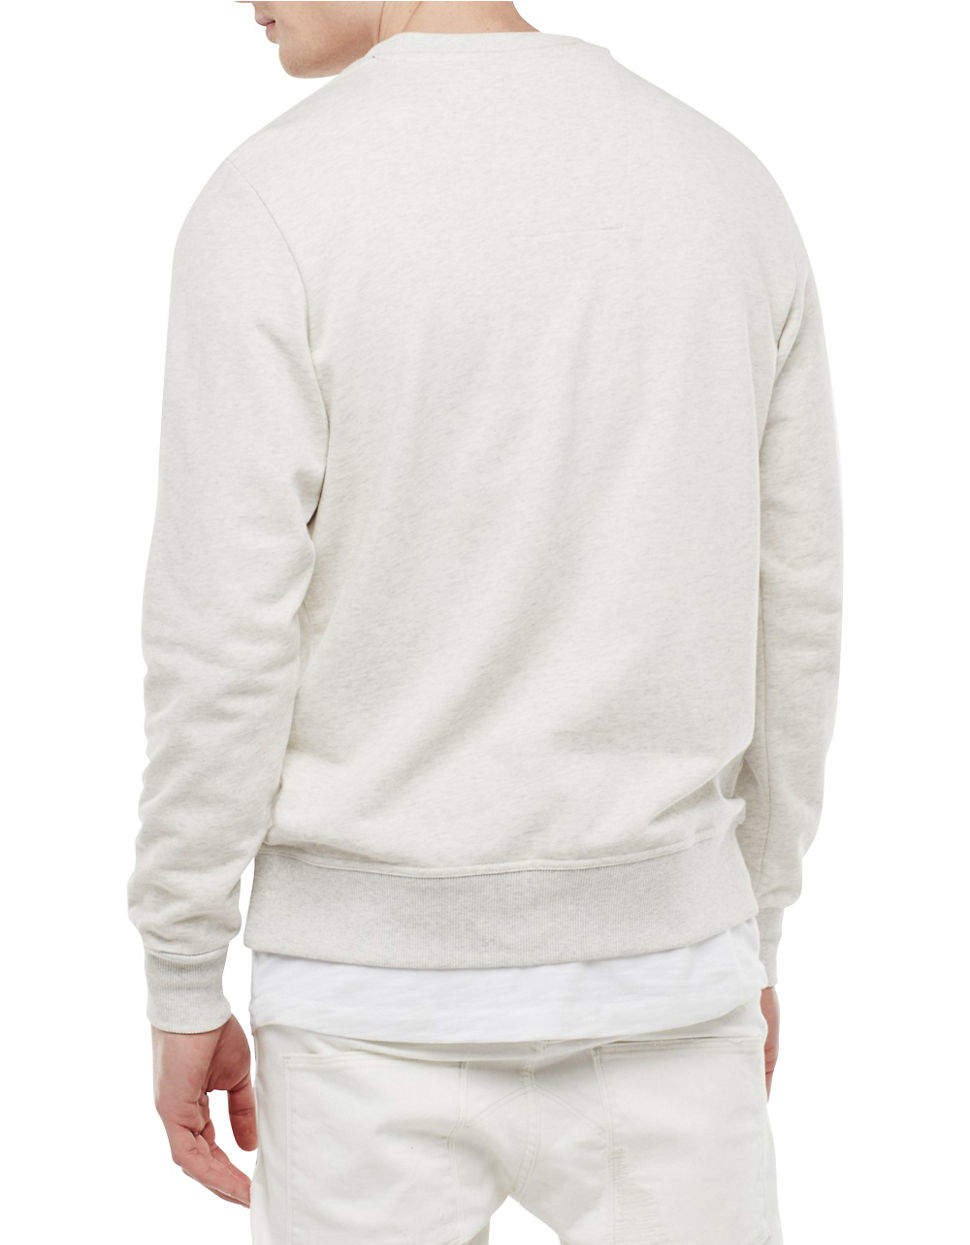 star raw logo pullover sweatshirt in white for men lyst. Black Bedroom Furniture Sets. Home Design Ideas